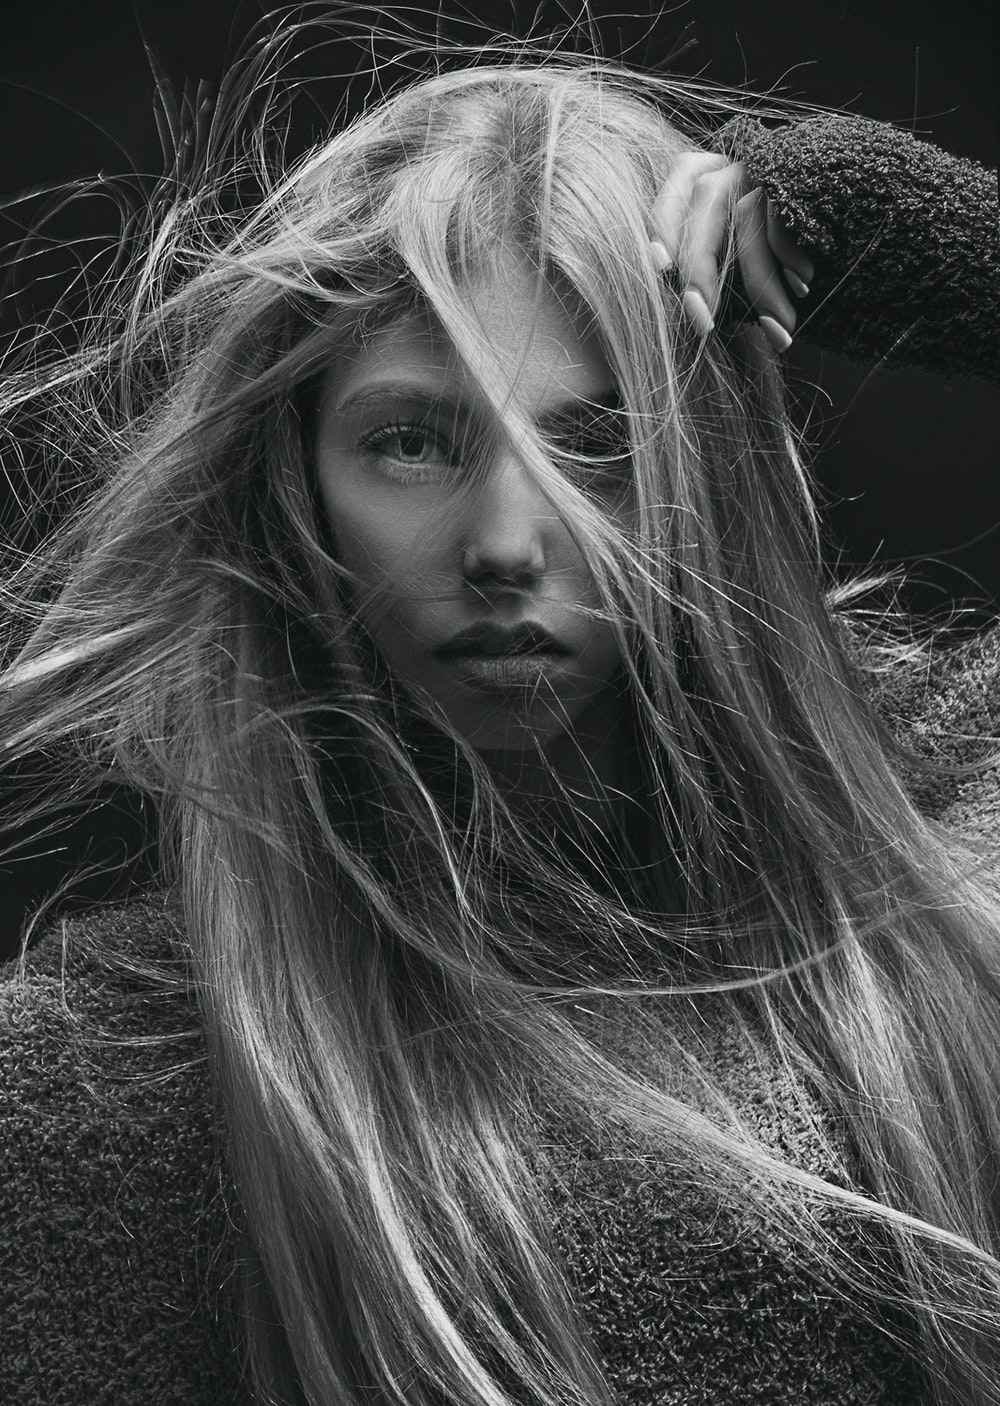 grayscale photo of woman with long hair